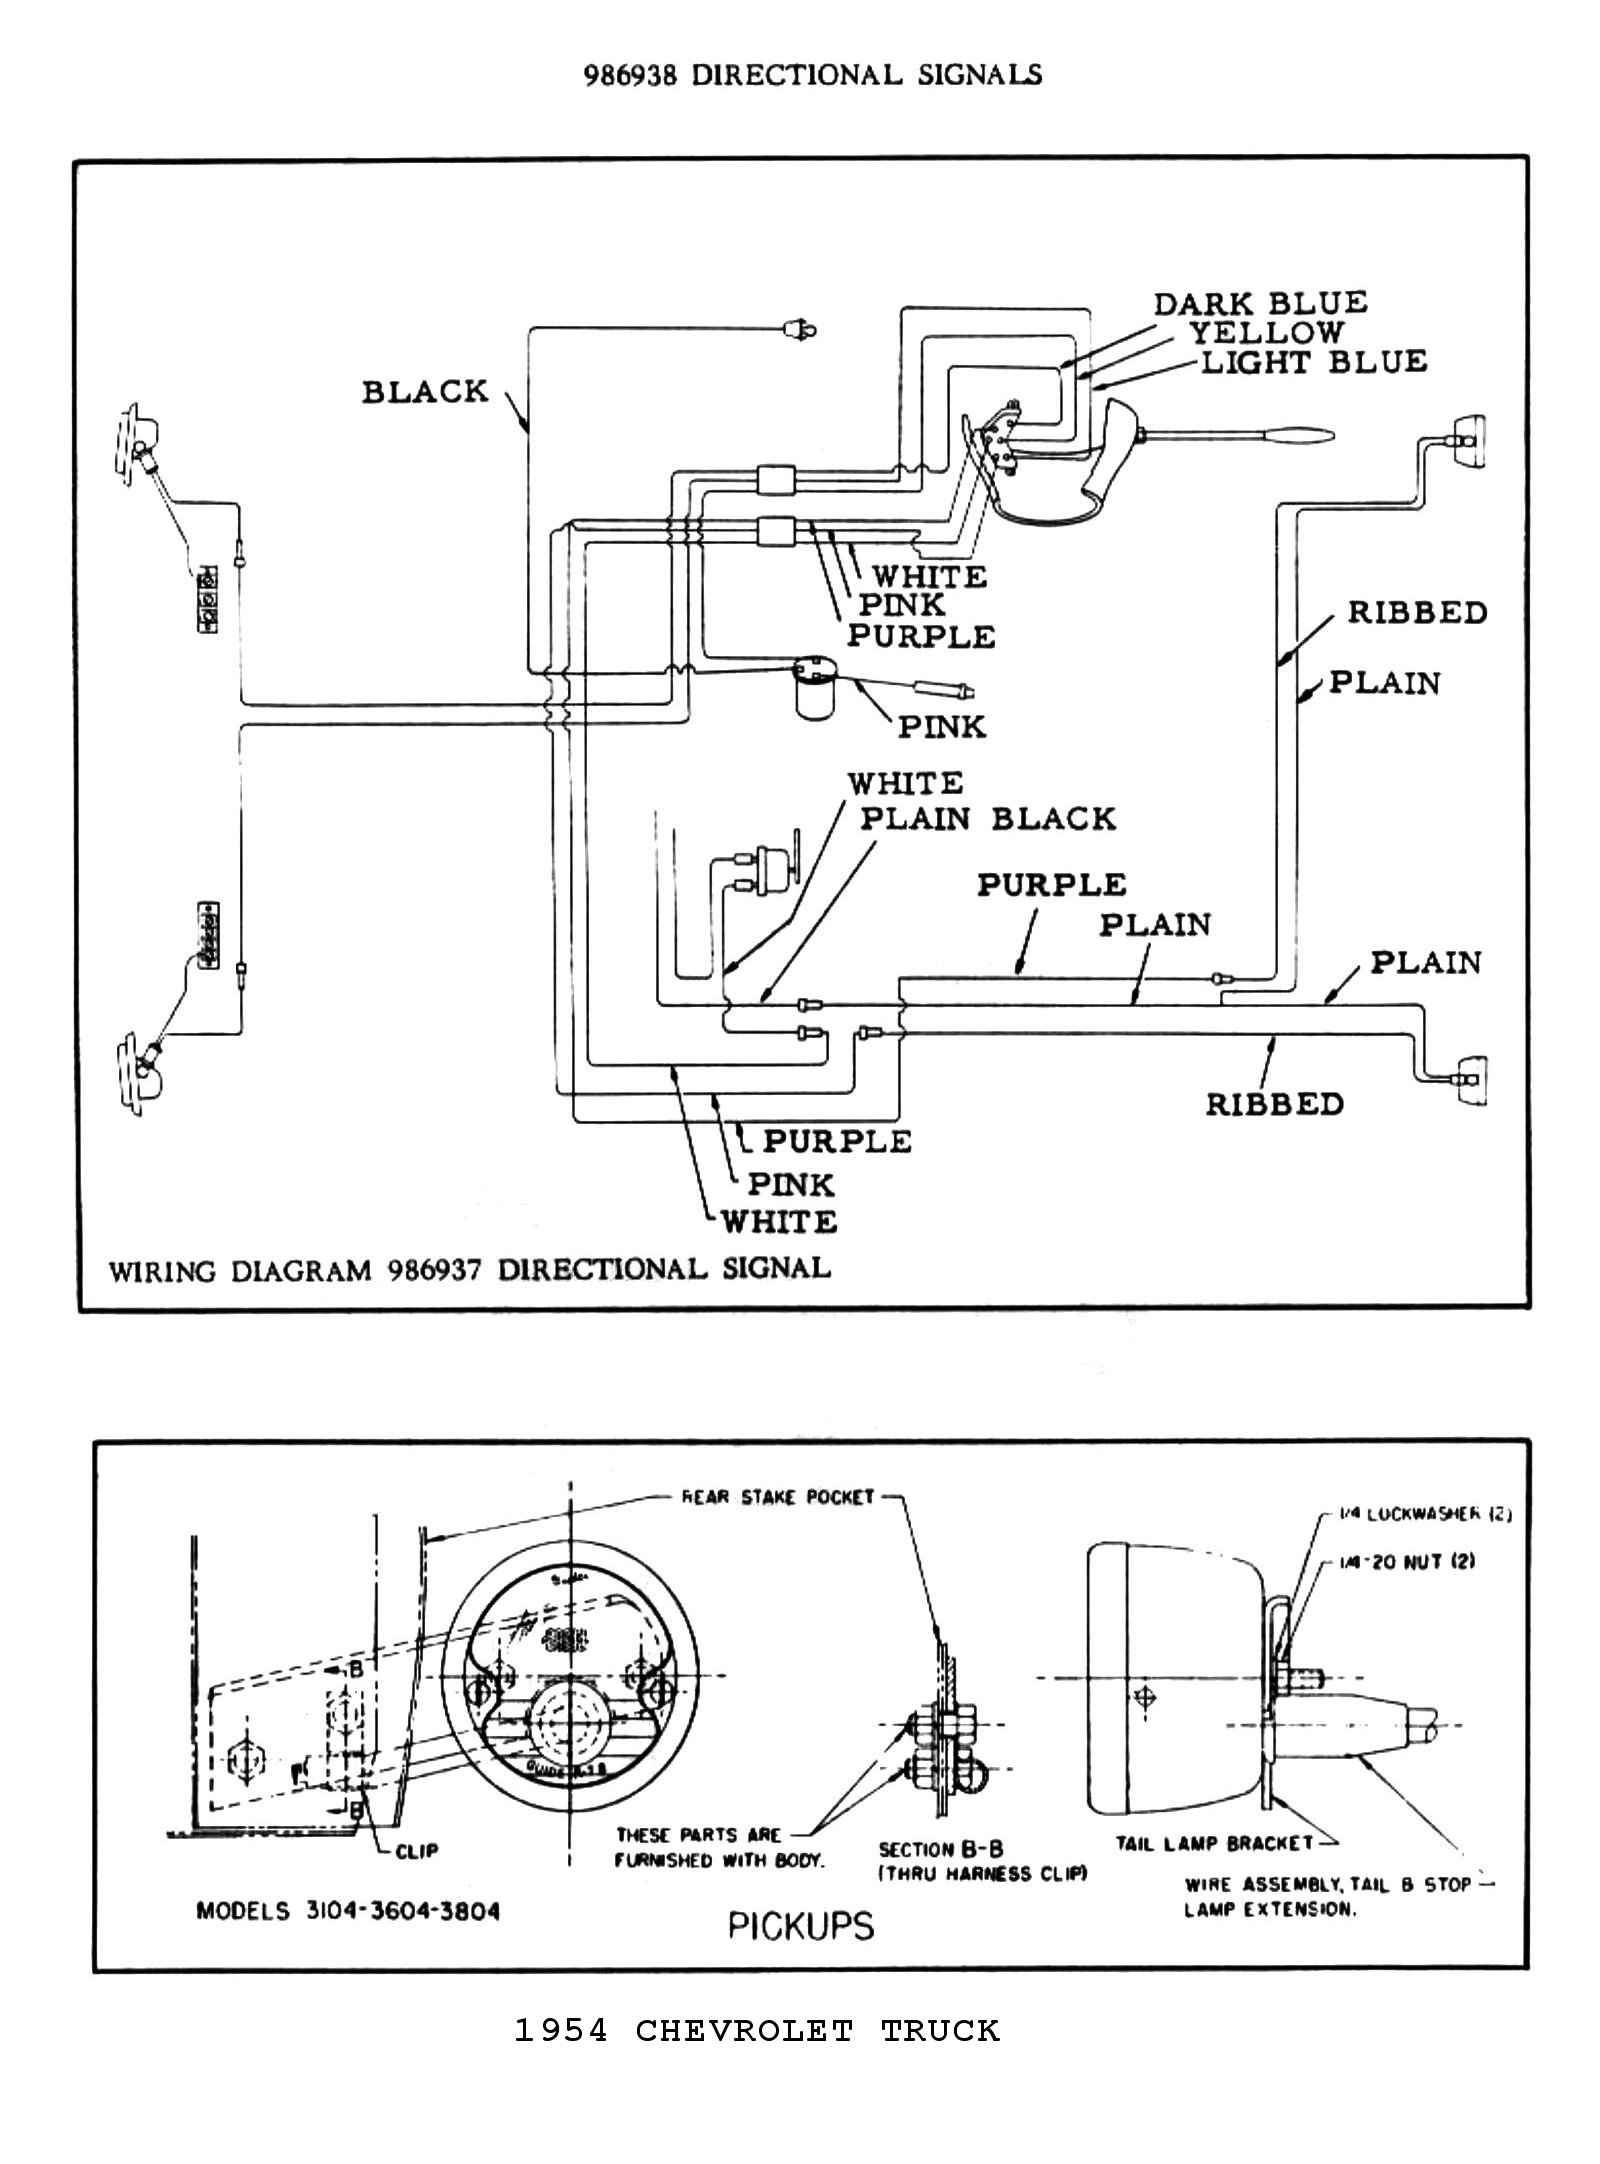 1952 chevy headlight switch wiring diagram chevy wiring diagrams #13